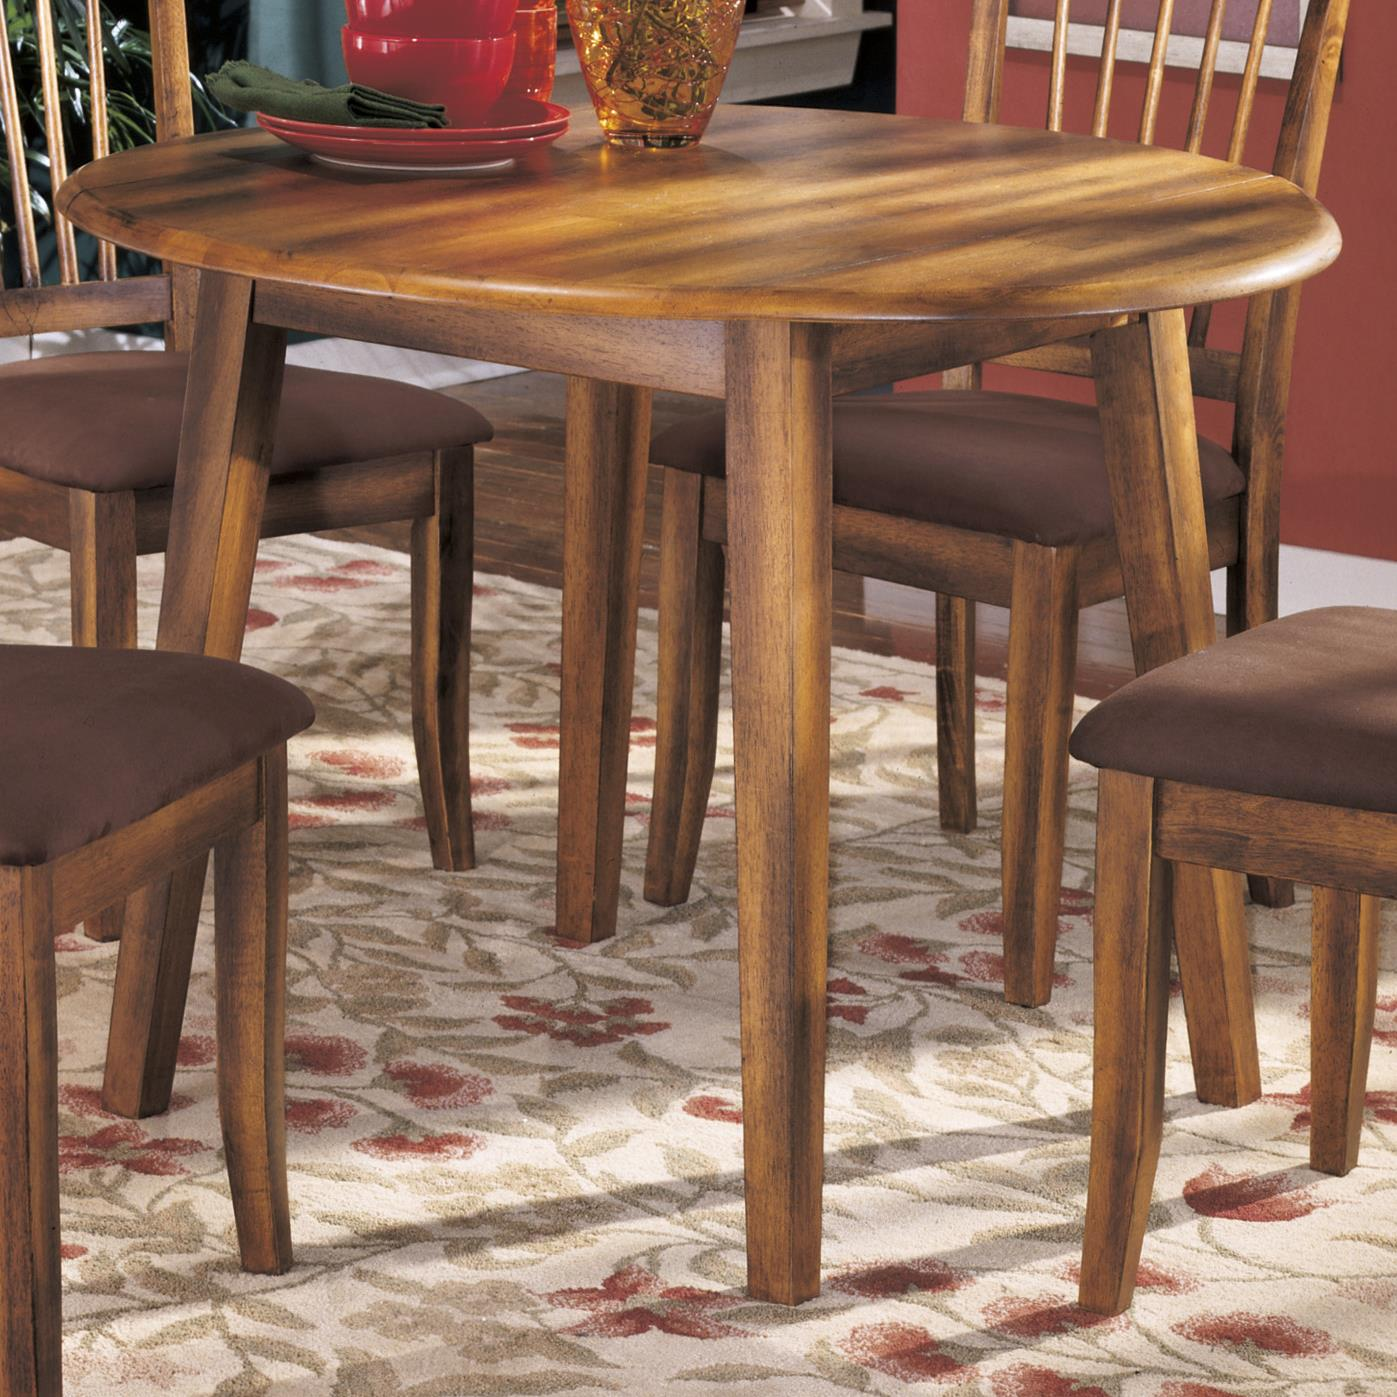 Ashley Furniture Berringer D199 15 Hickory Stained